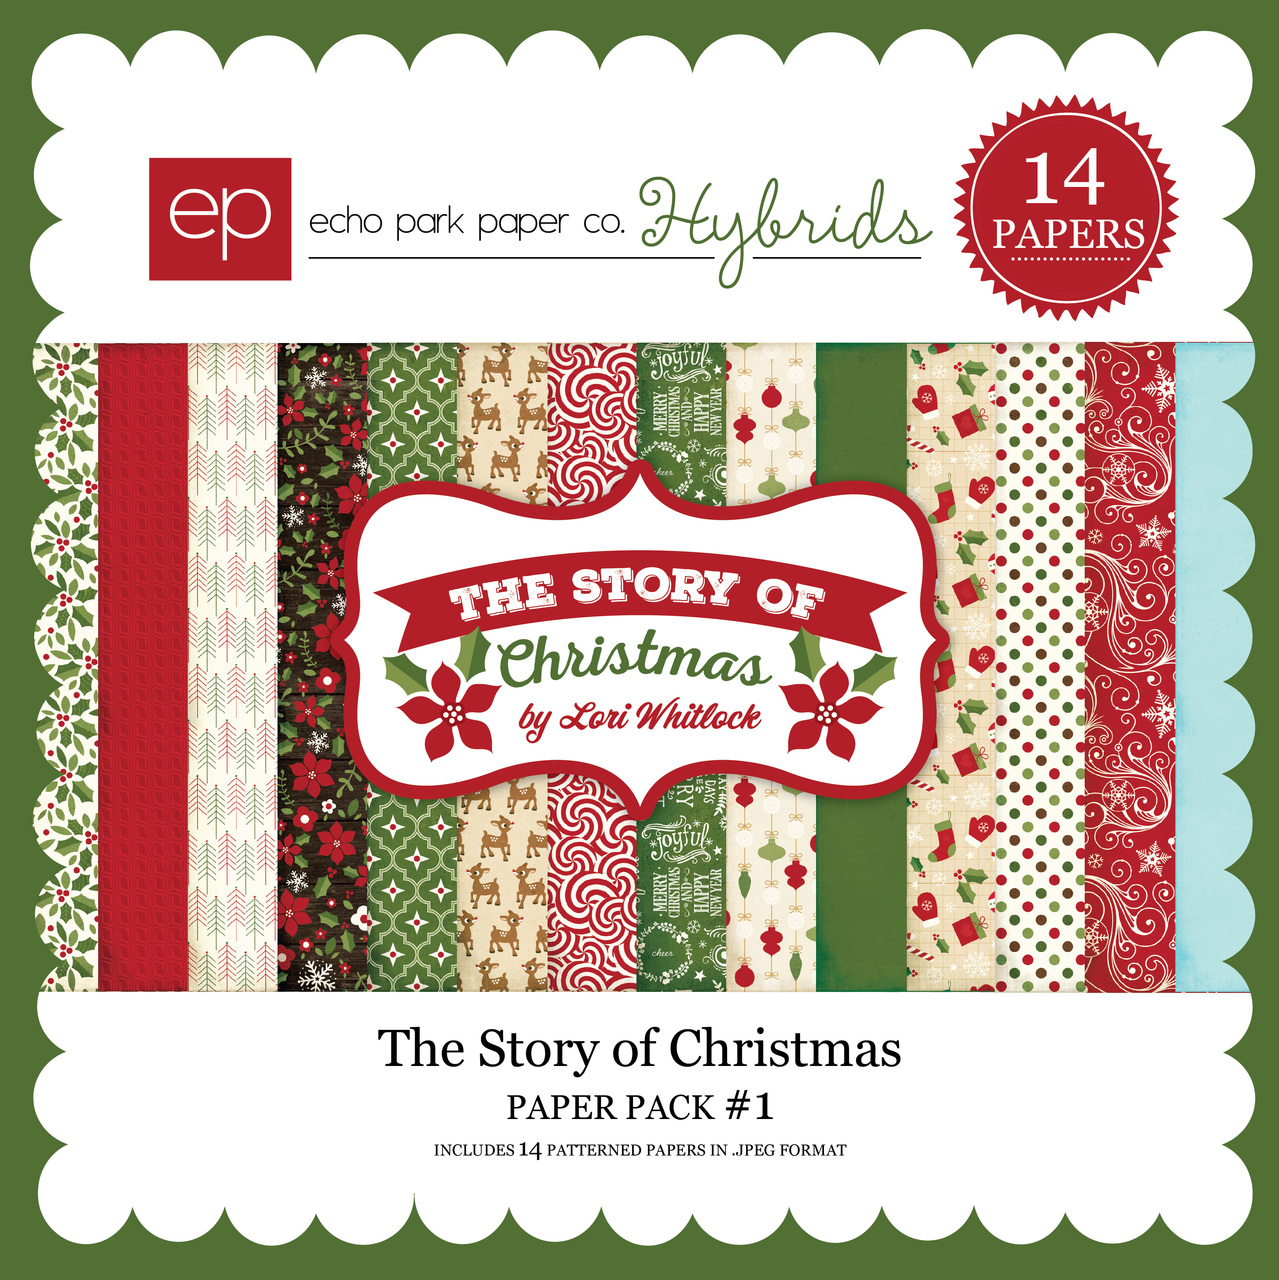 The Story of Christmas Paper Pack 1